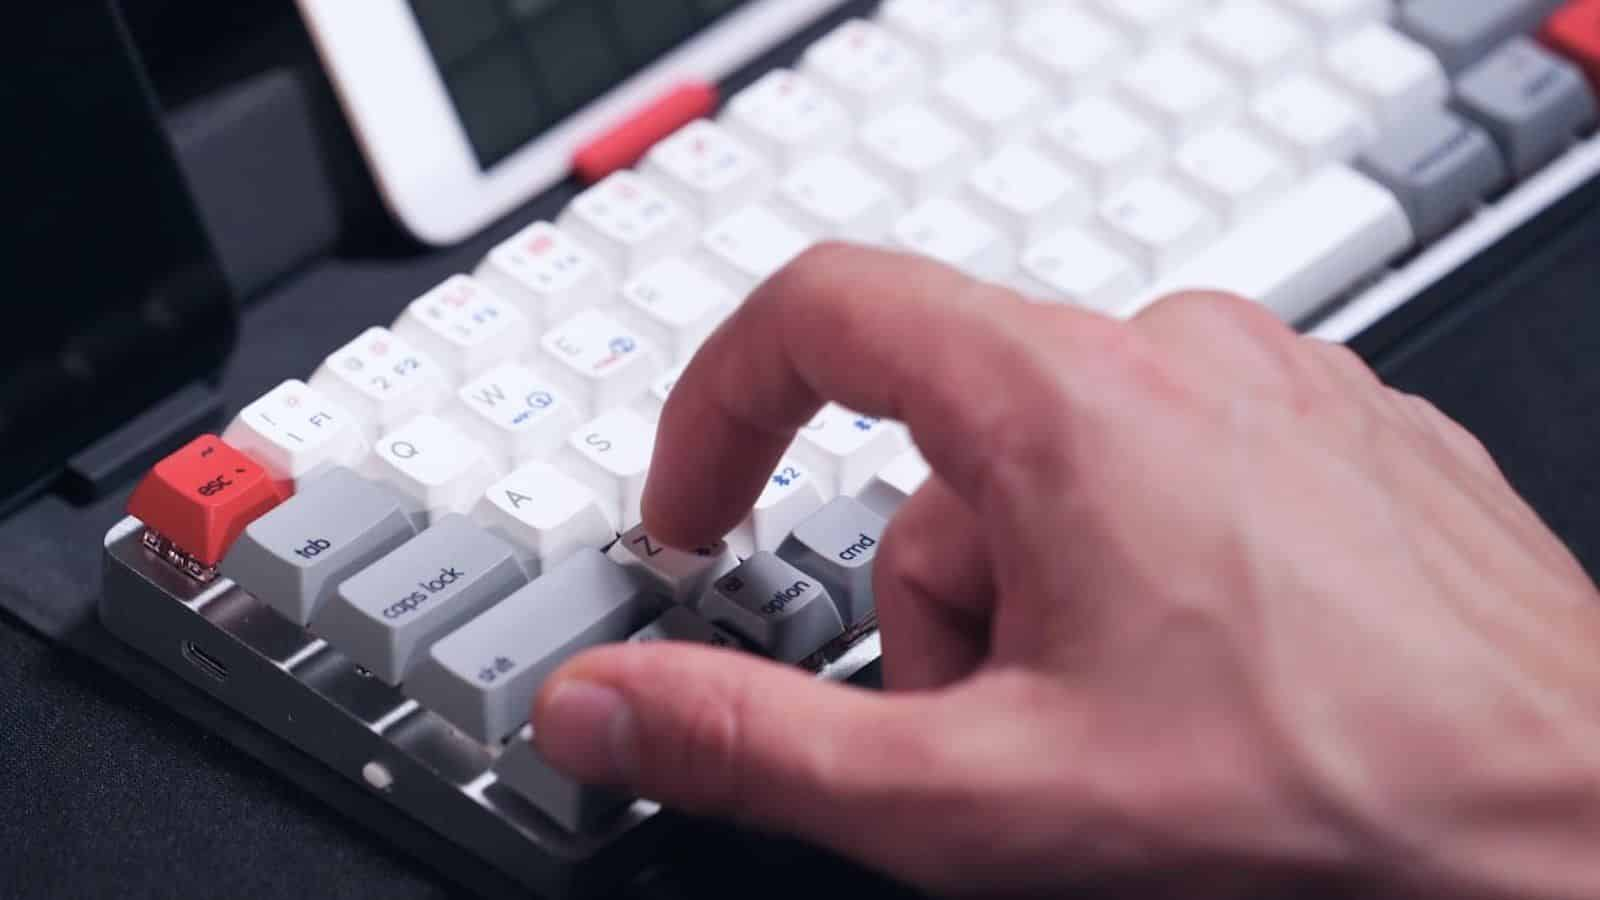 This adjustable wireless keyboard has mechanical switches and an invisible stand